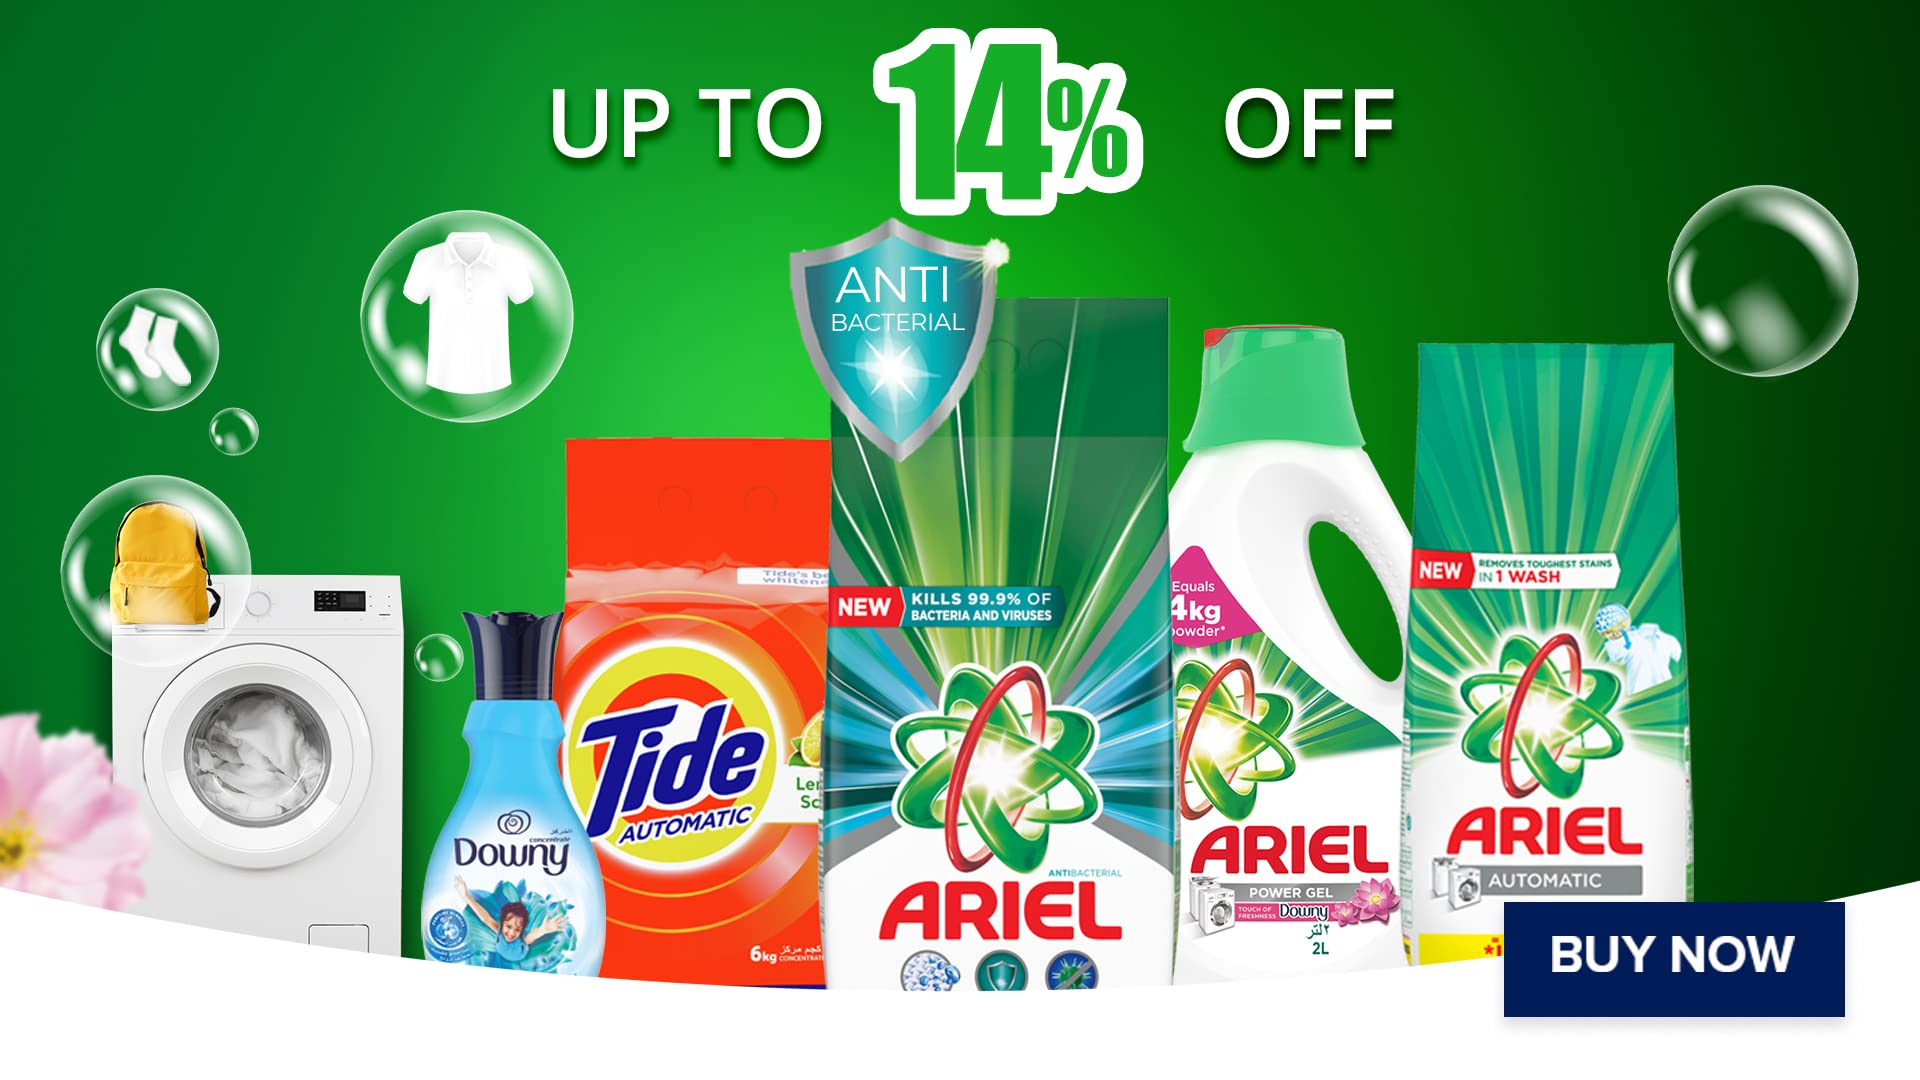 Up to 14% off fabric & home care